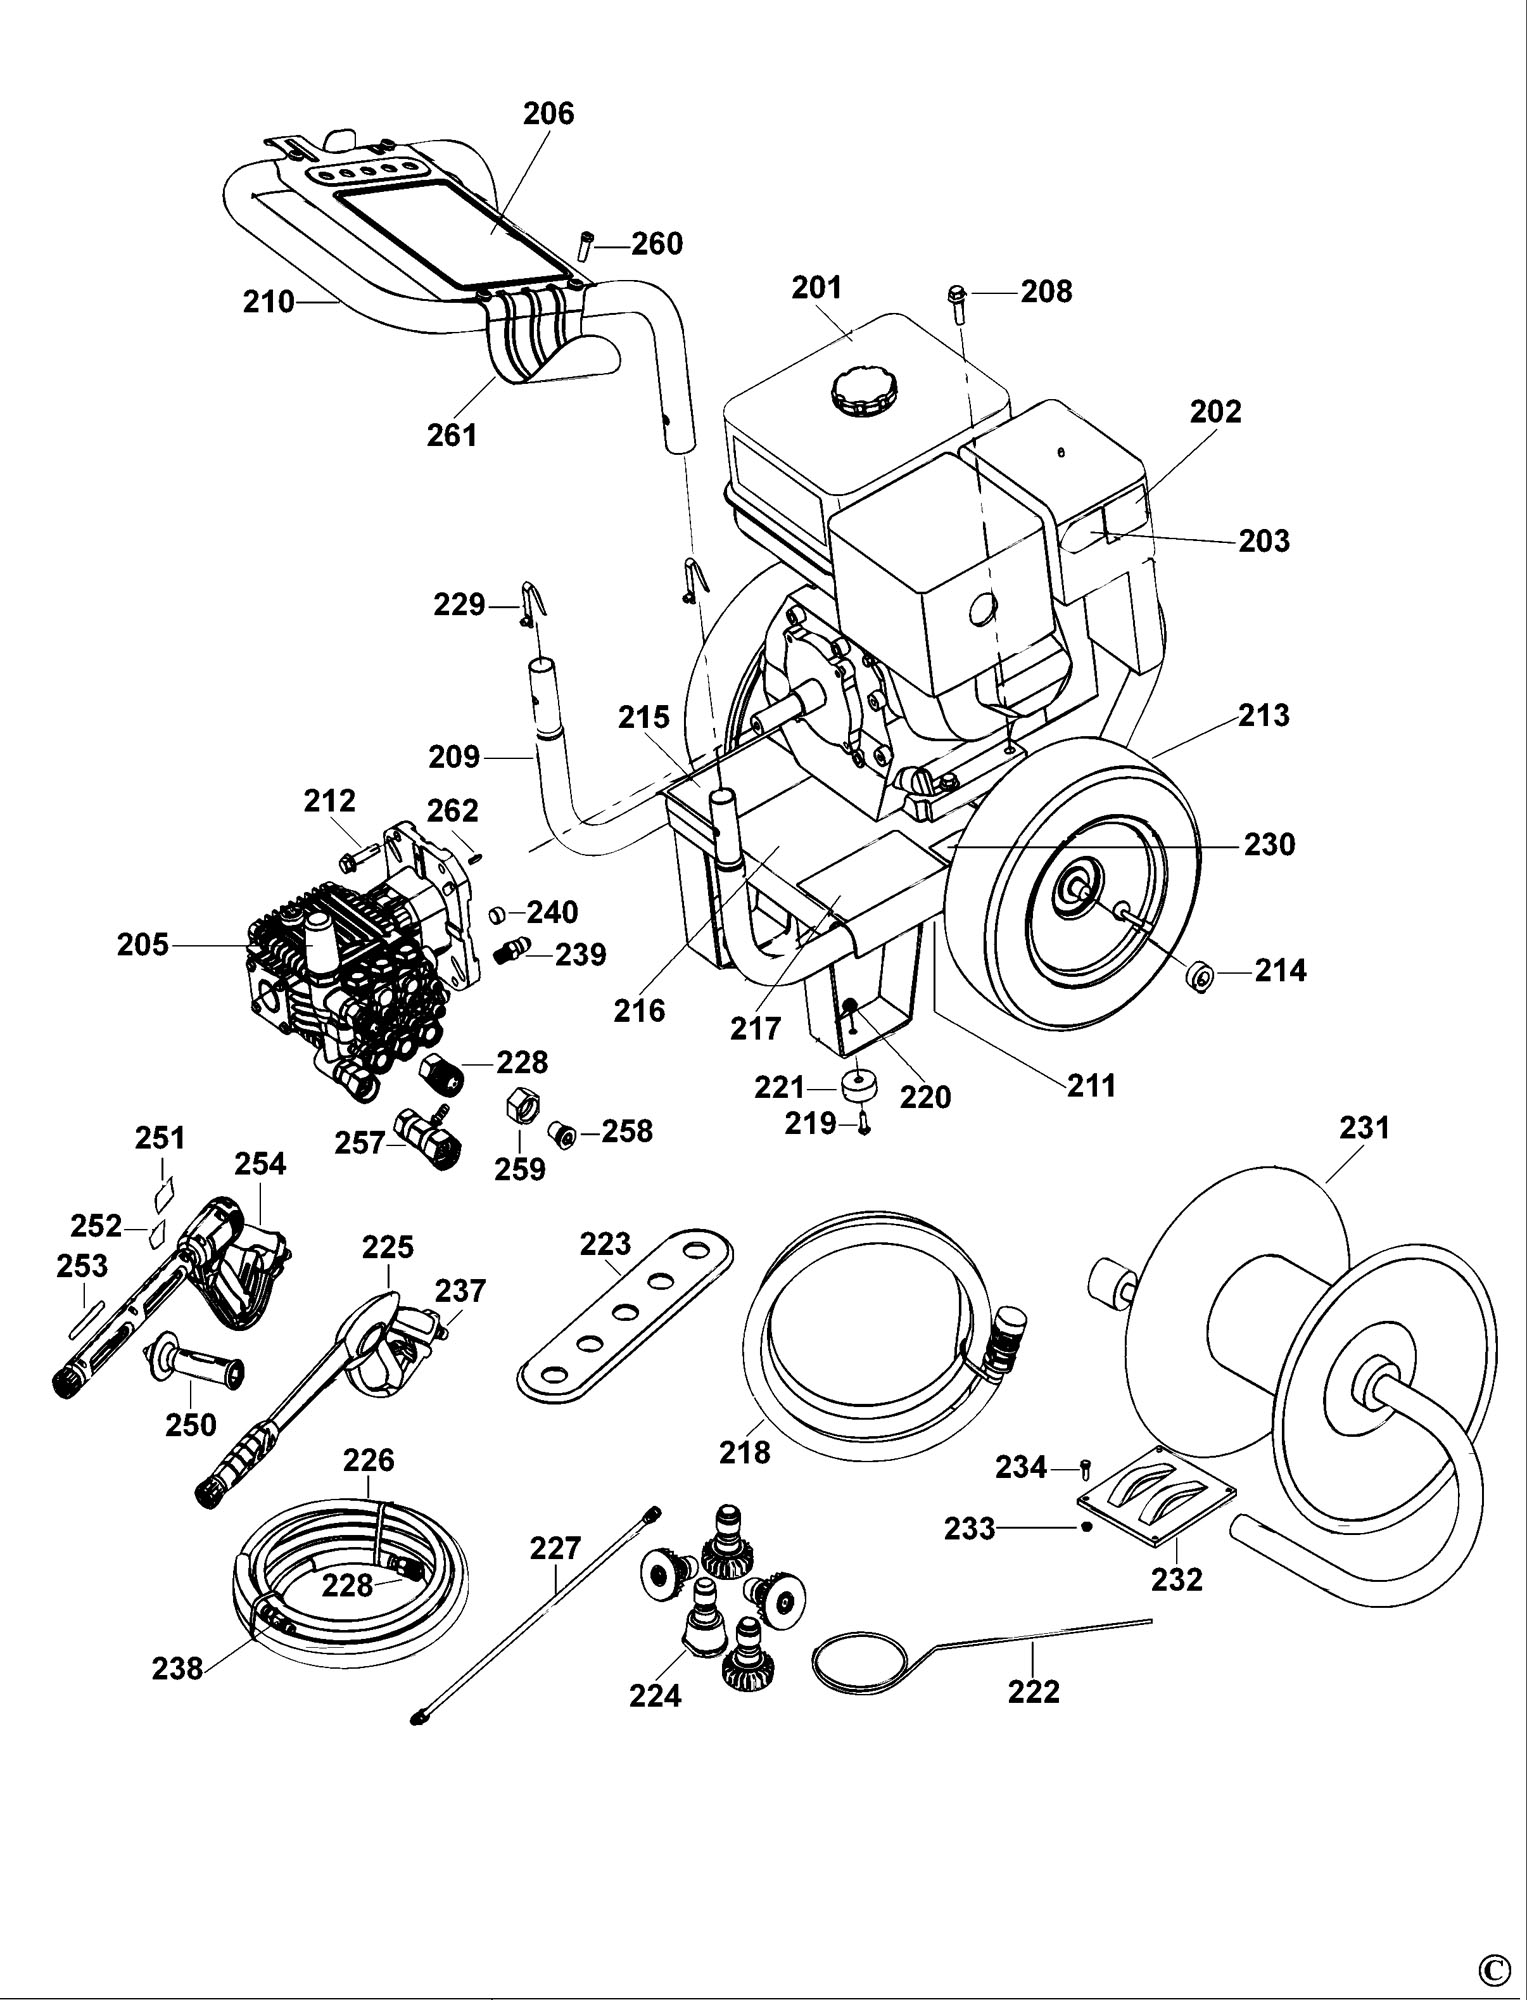 Spares for dewalt dp3750 pressure washer type 1 sparedp3750 click for bigger diagram pooptronica Gallery